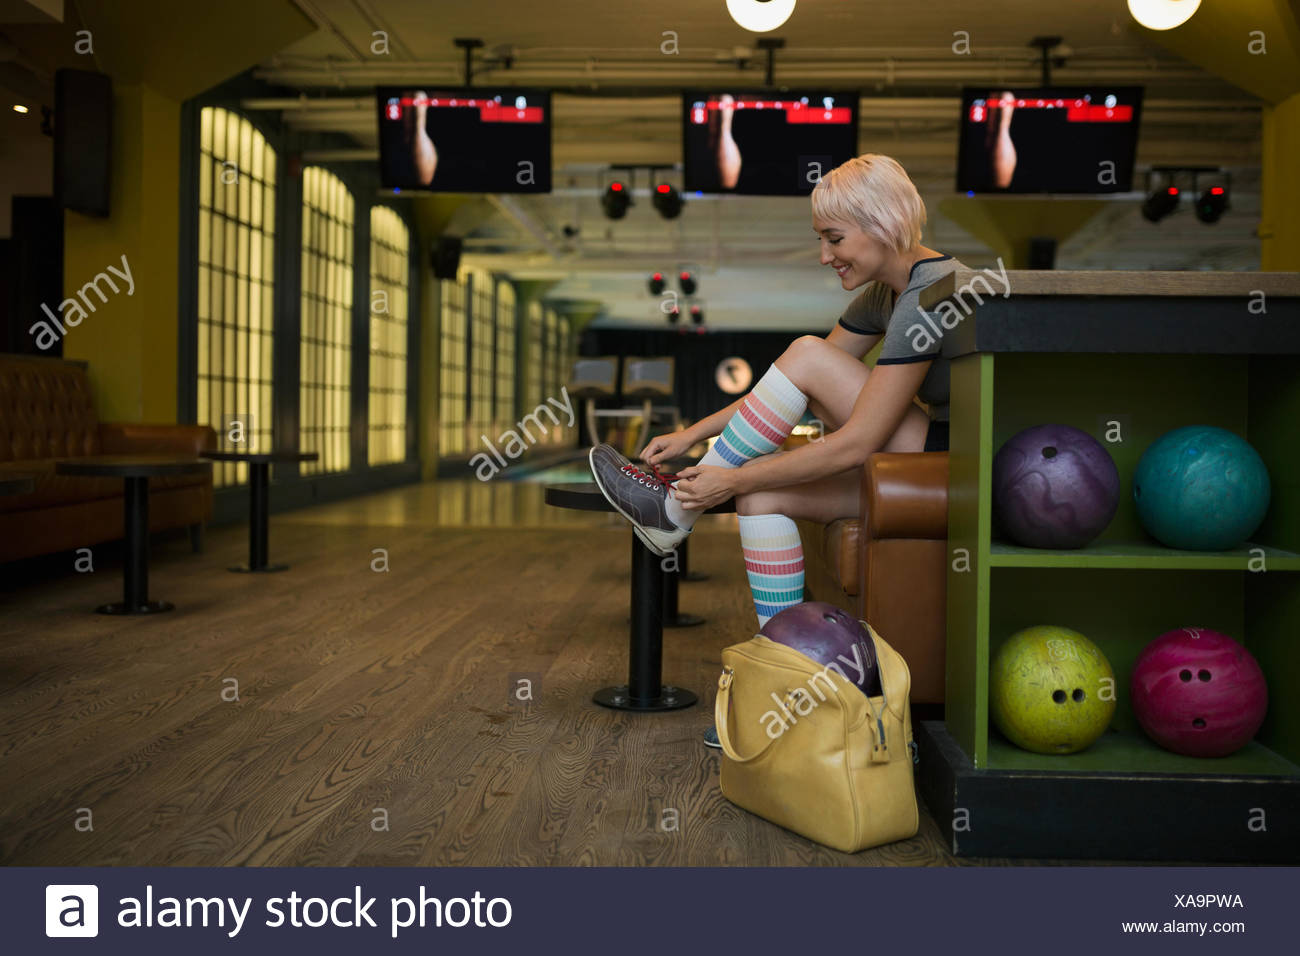 Young woman putting on bowling shoes bowling alley Stock Photo